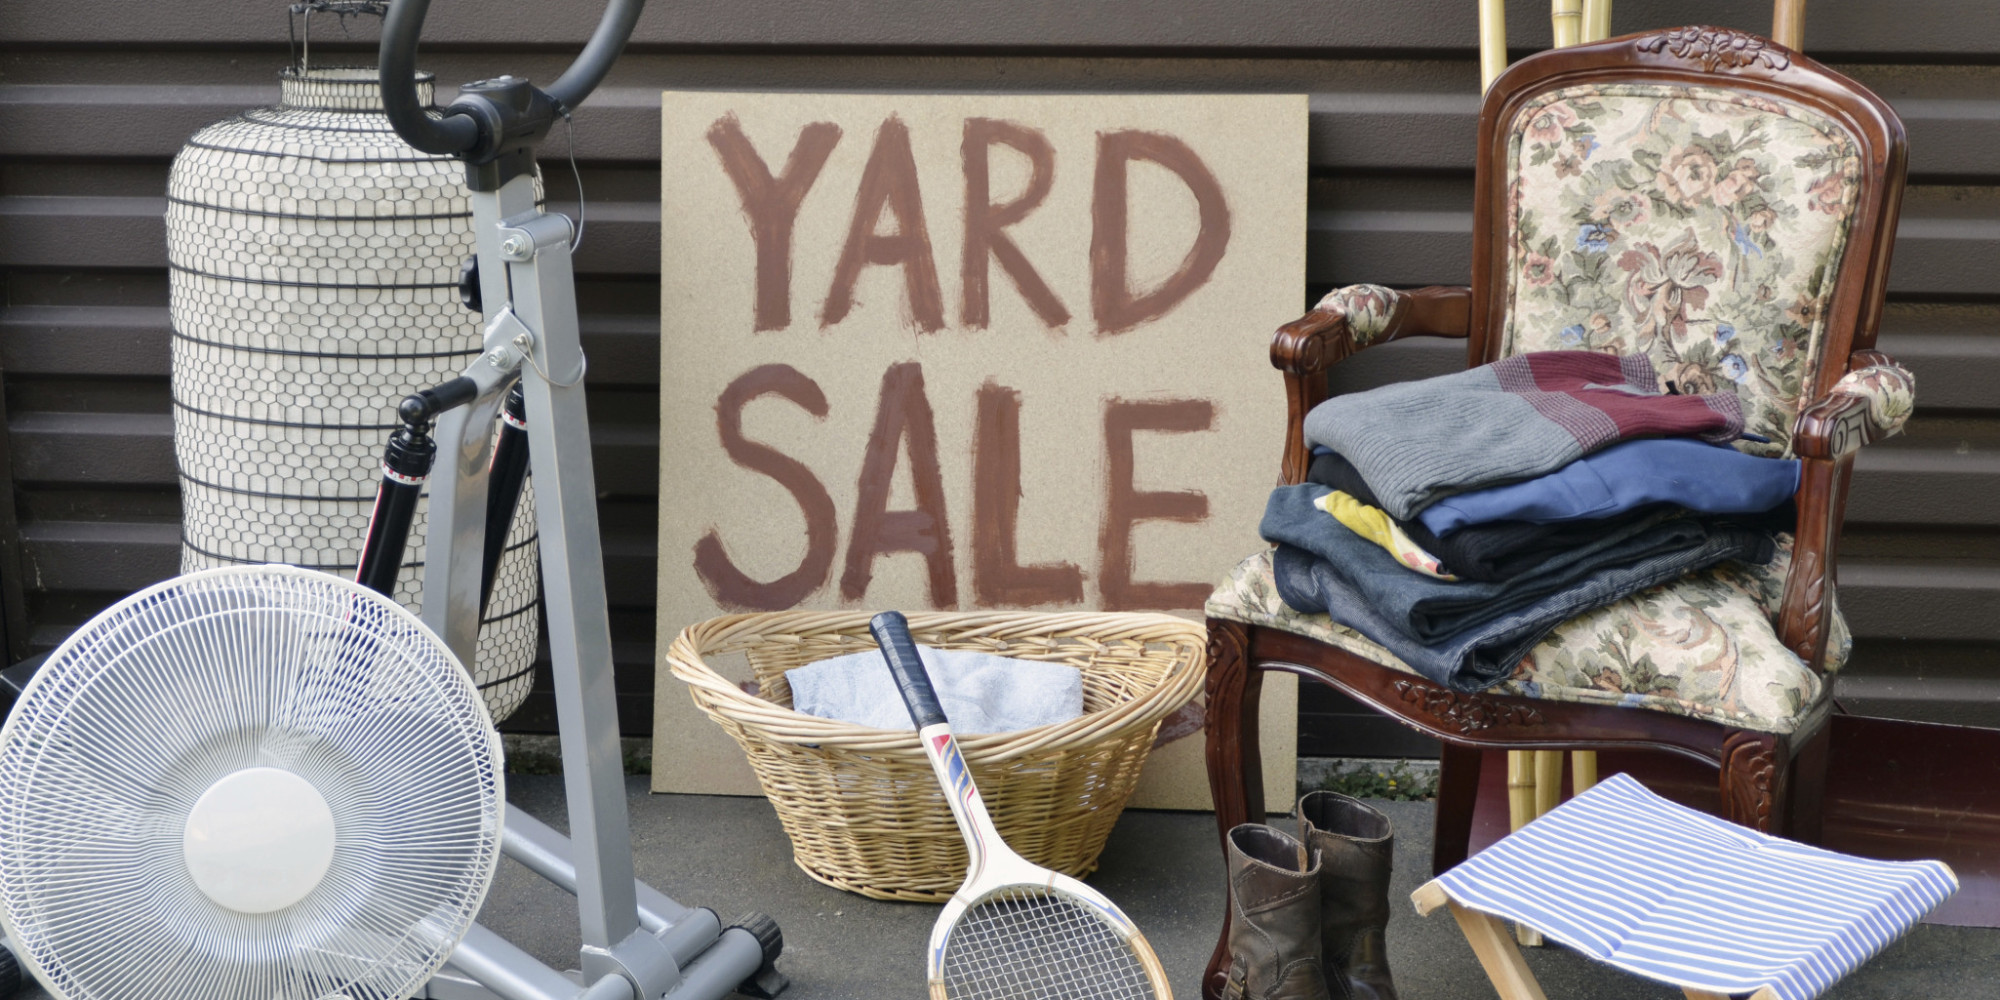 11 things no one will buy at your yard sale